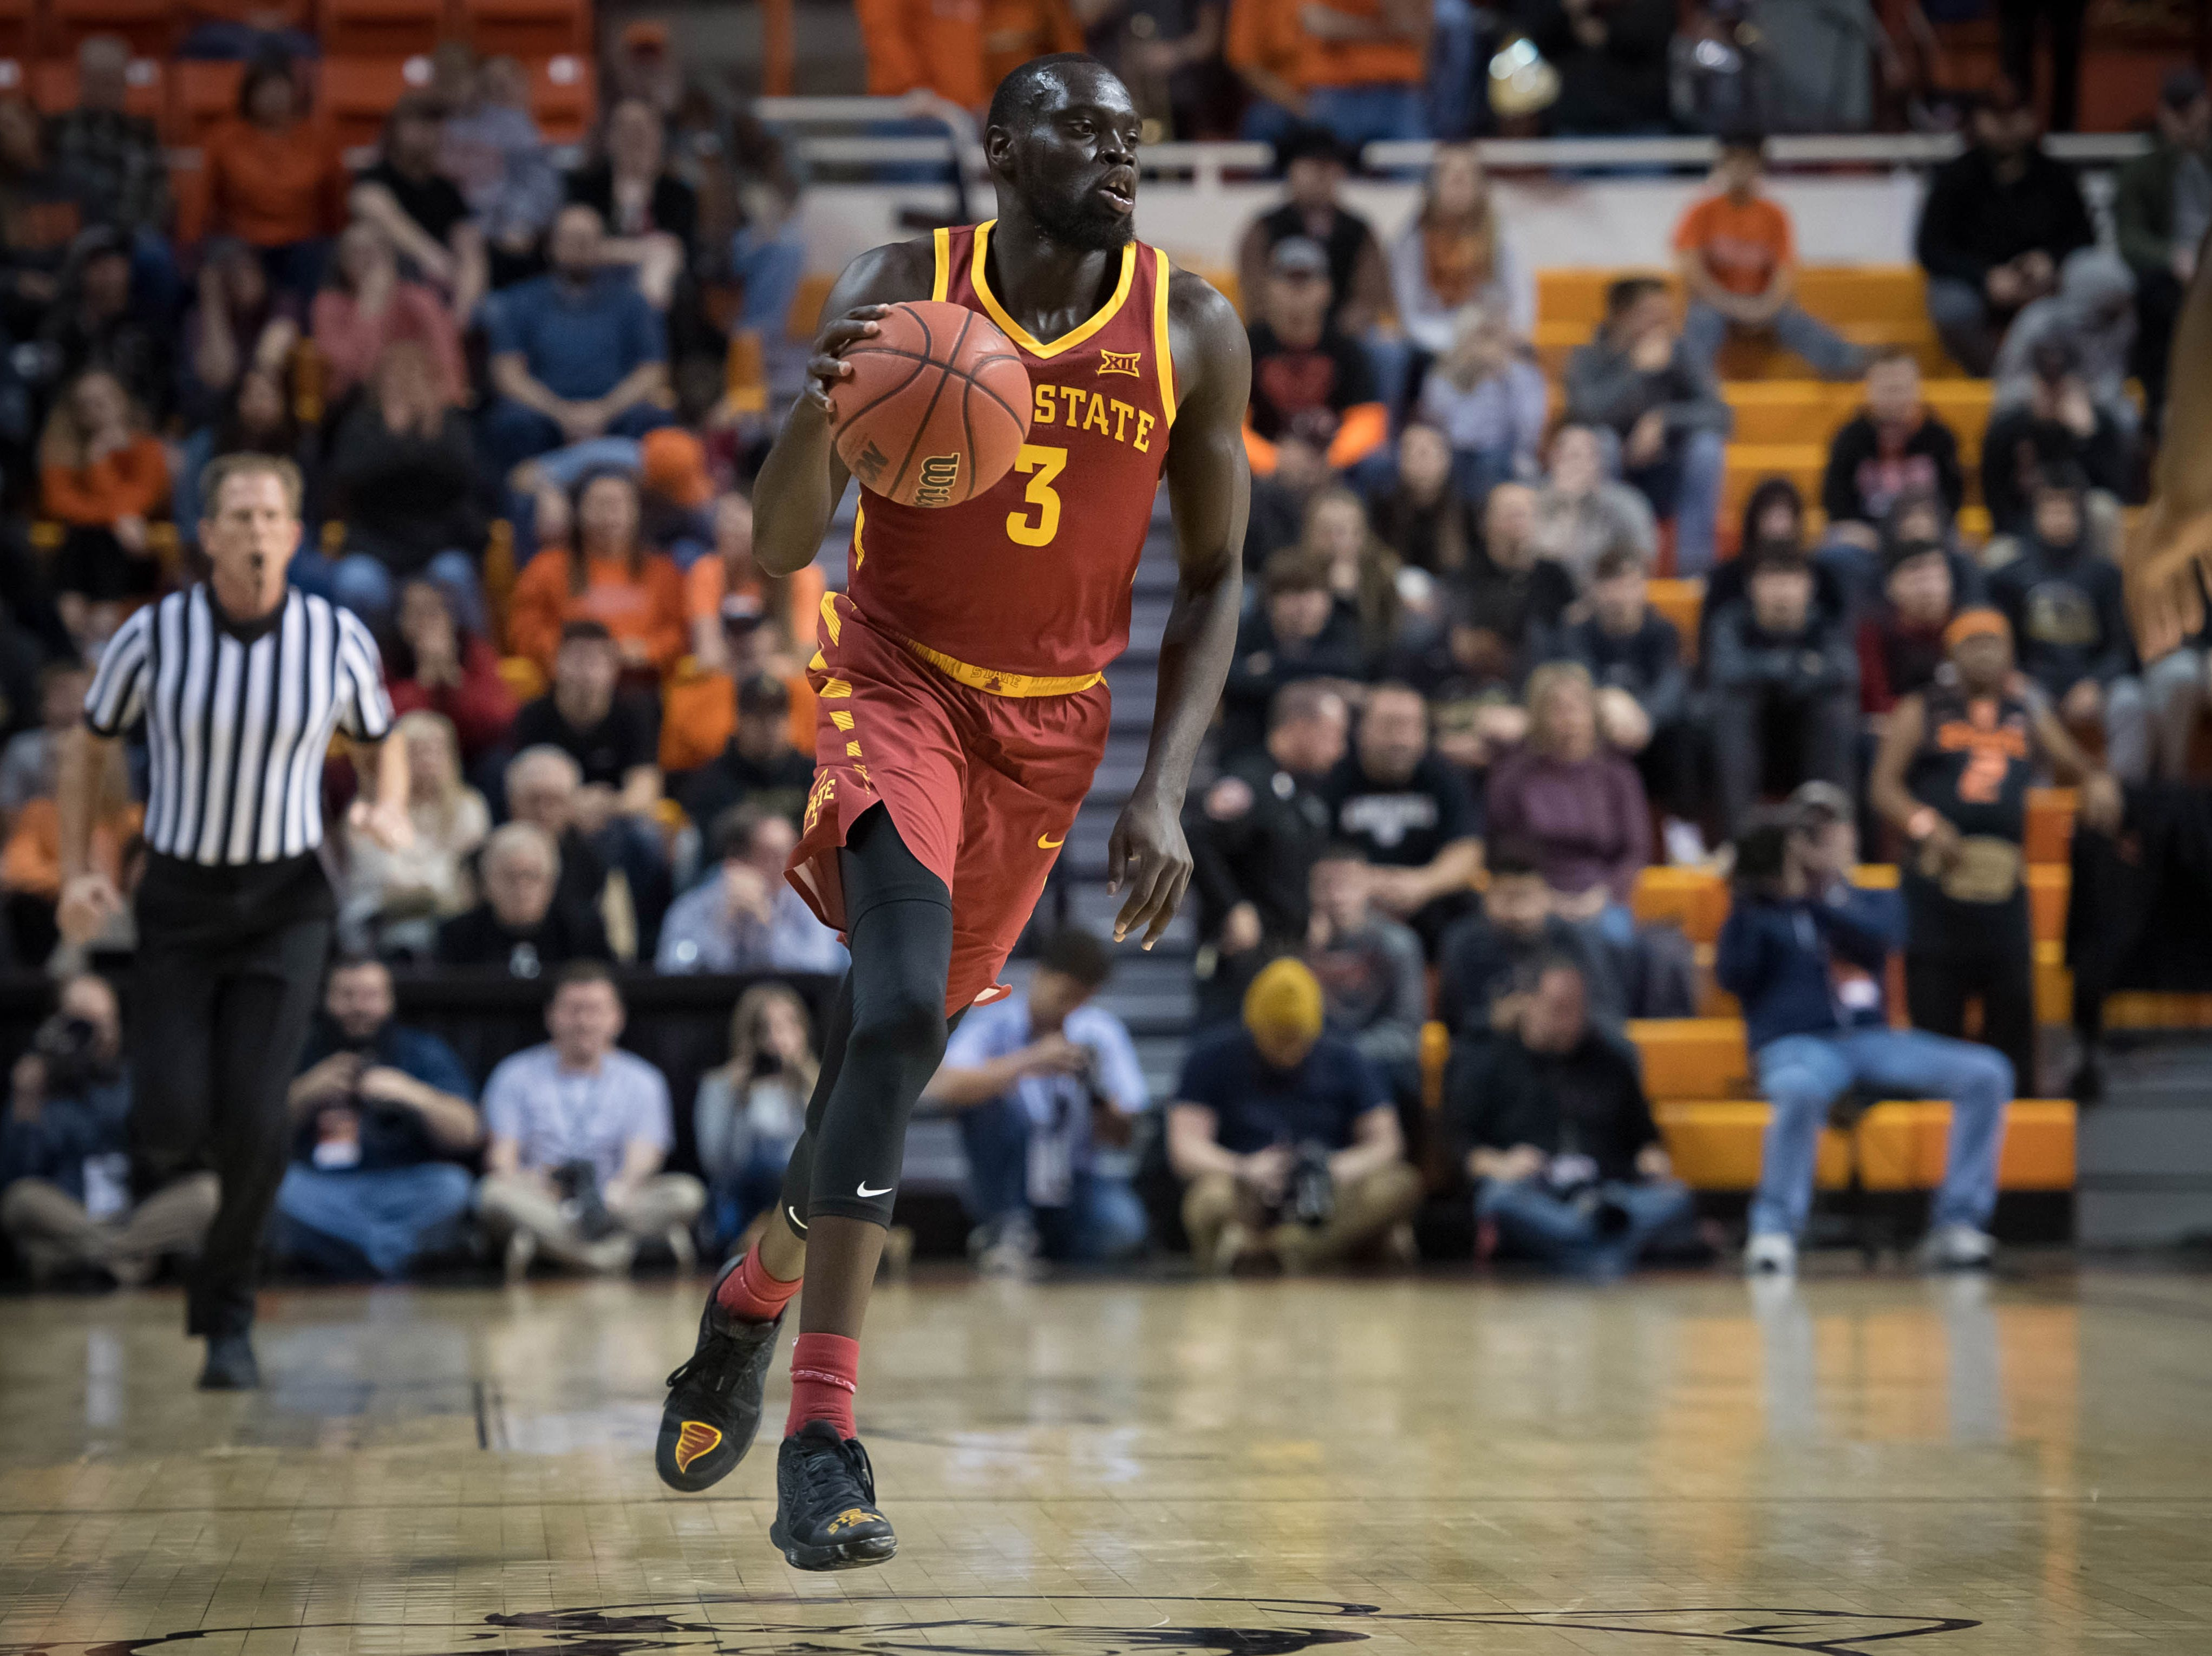 Jan 2, 2019; Stillwater, OK, USA; Iowa State Cyclones guard Marial Shayok (3) dribbles the ball against the Oklahoma State Cowboys during the first half at Gallagher-Iba Arena.